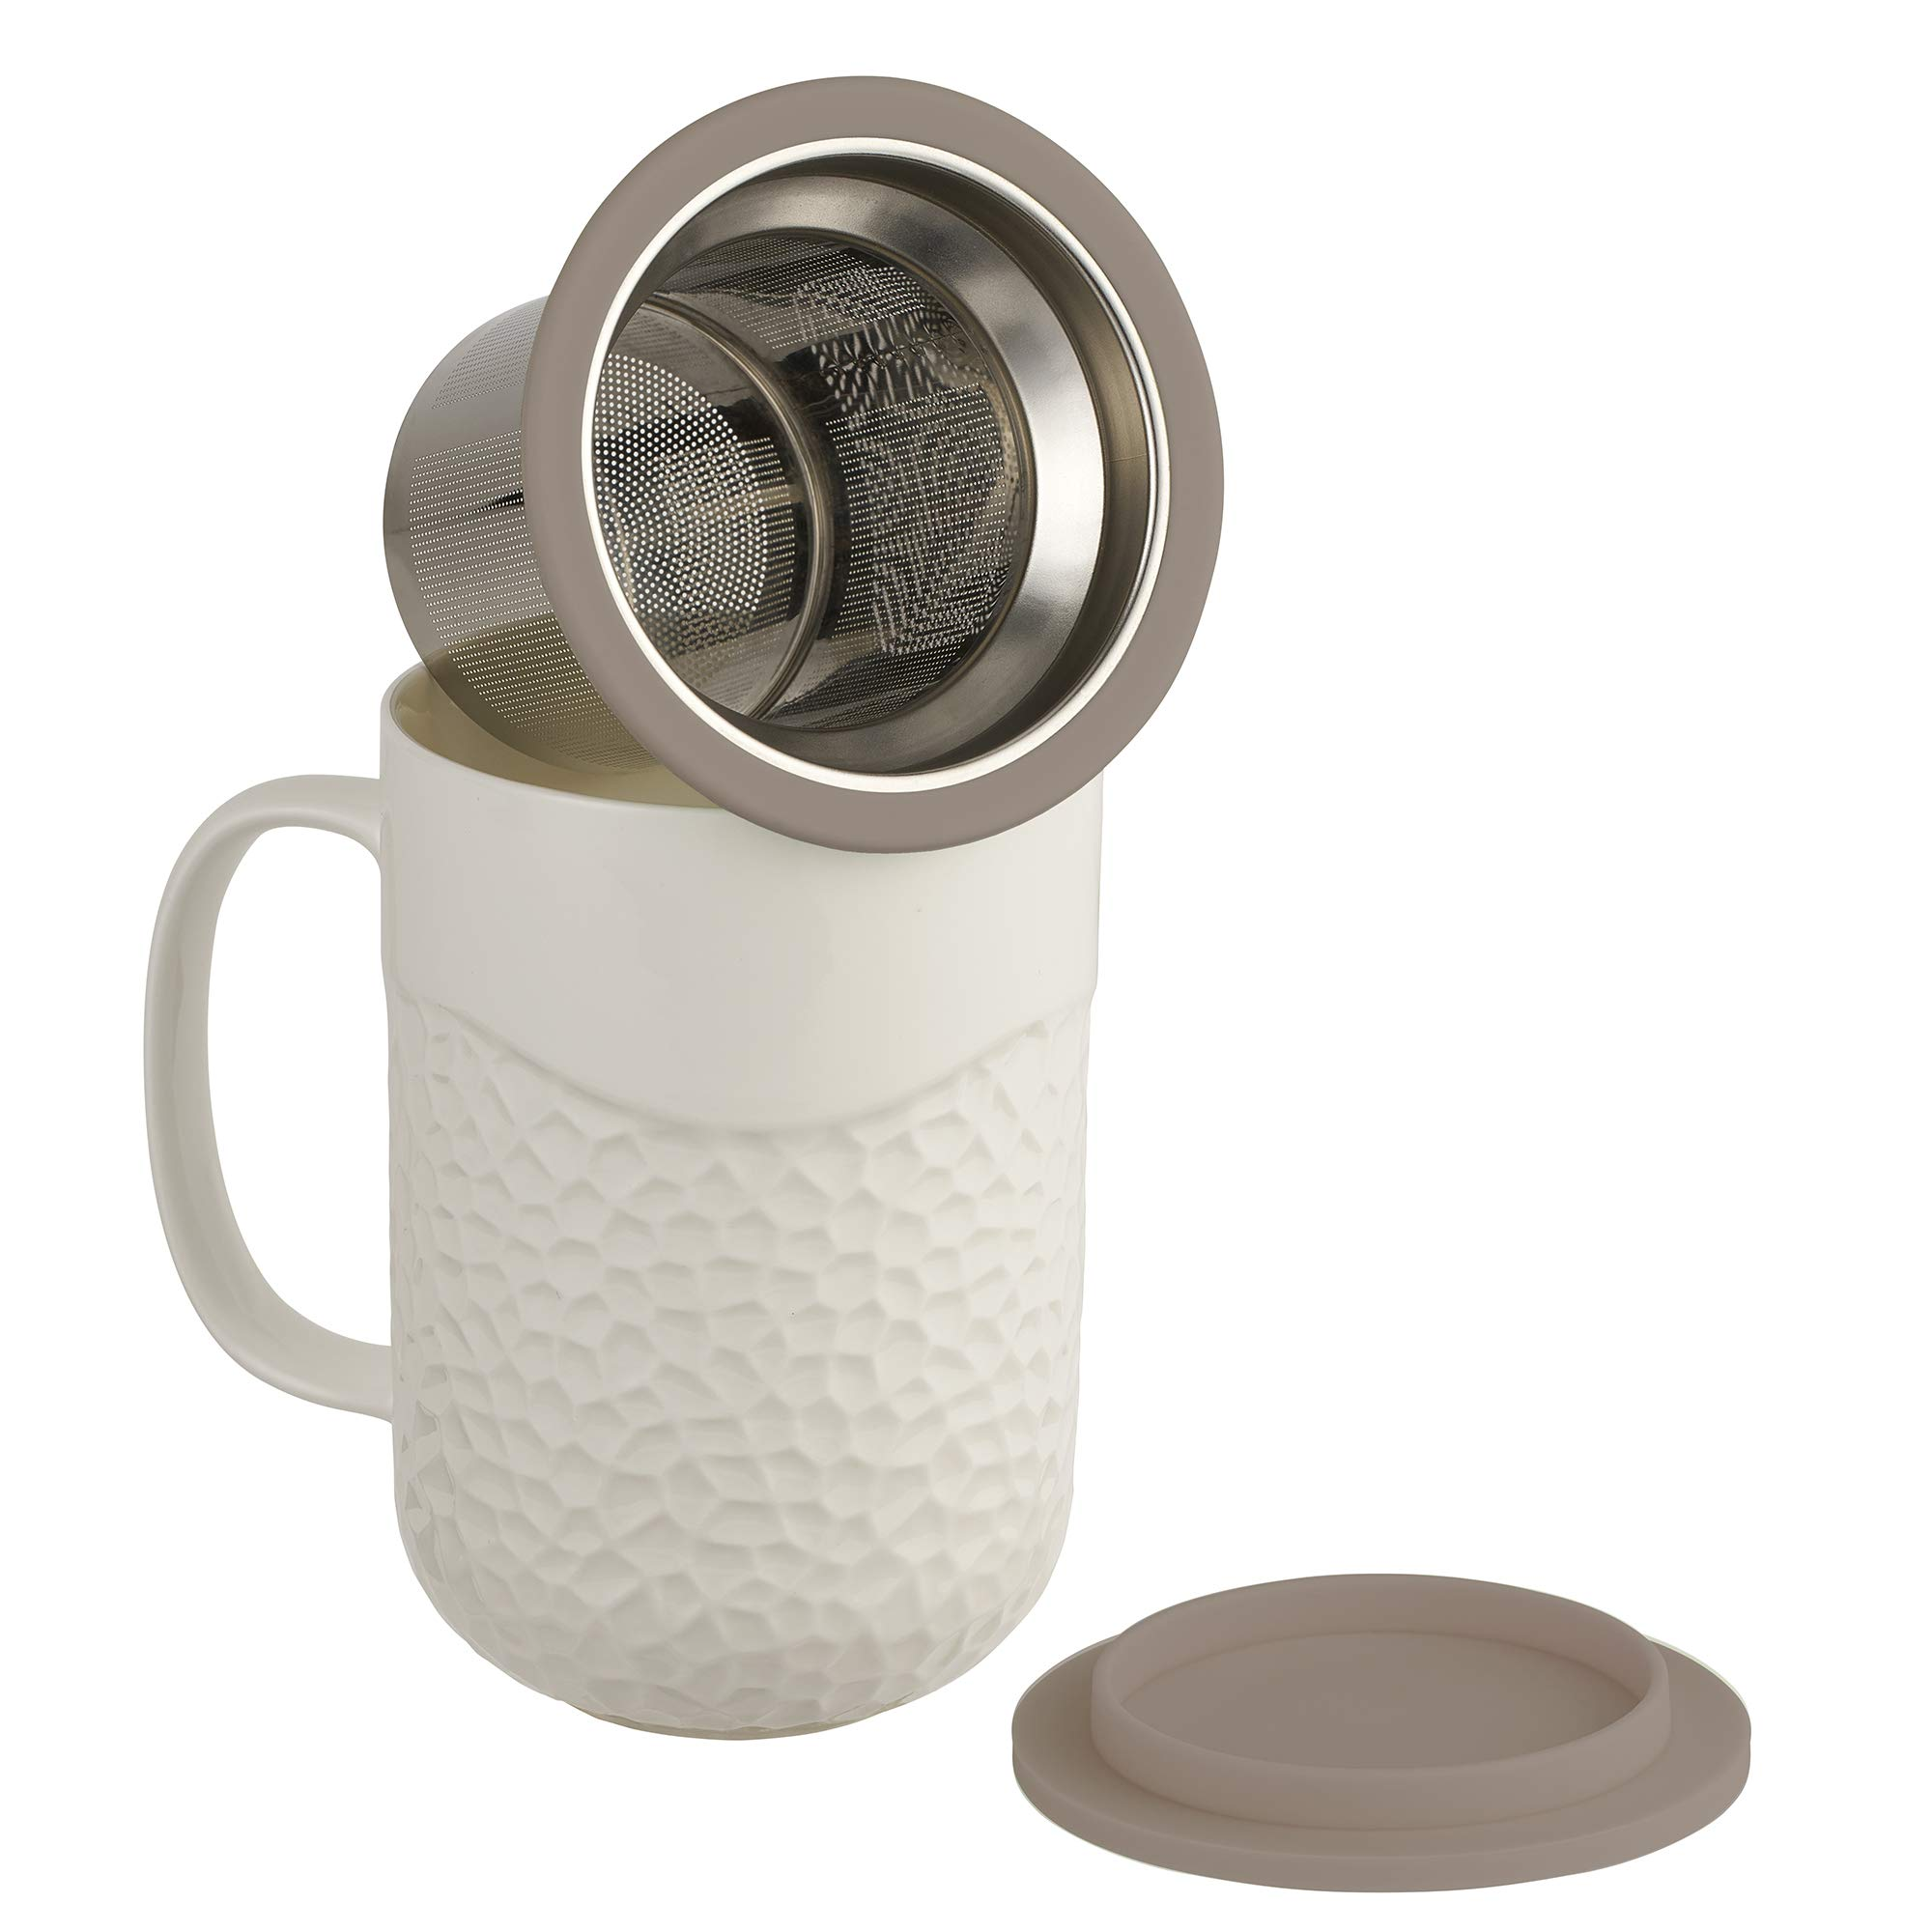 casaWare 15-Ounce Coral Textured New Bone China White Tea Infuser Mug with Lid/Coaster (Gray Lid)